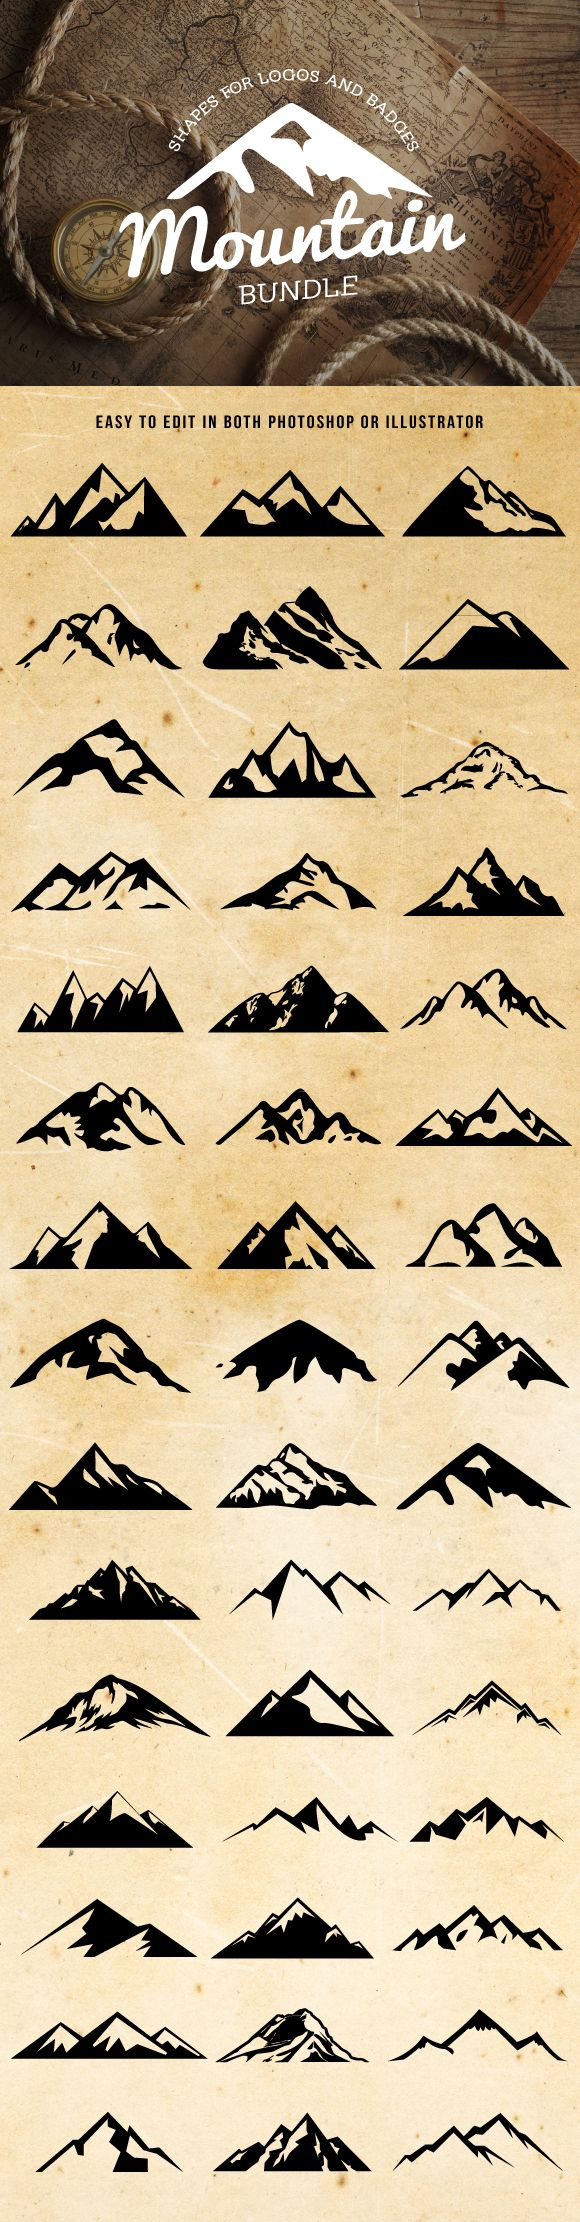 wide bracelets Mountain Shapes For Logos Bundle